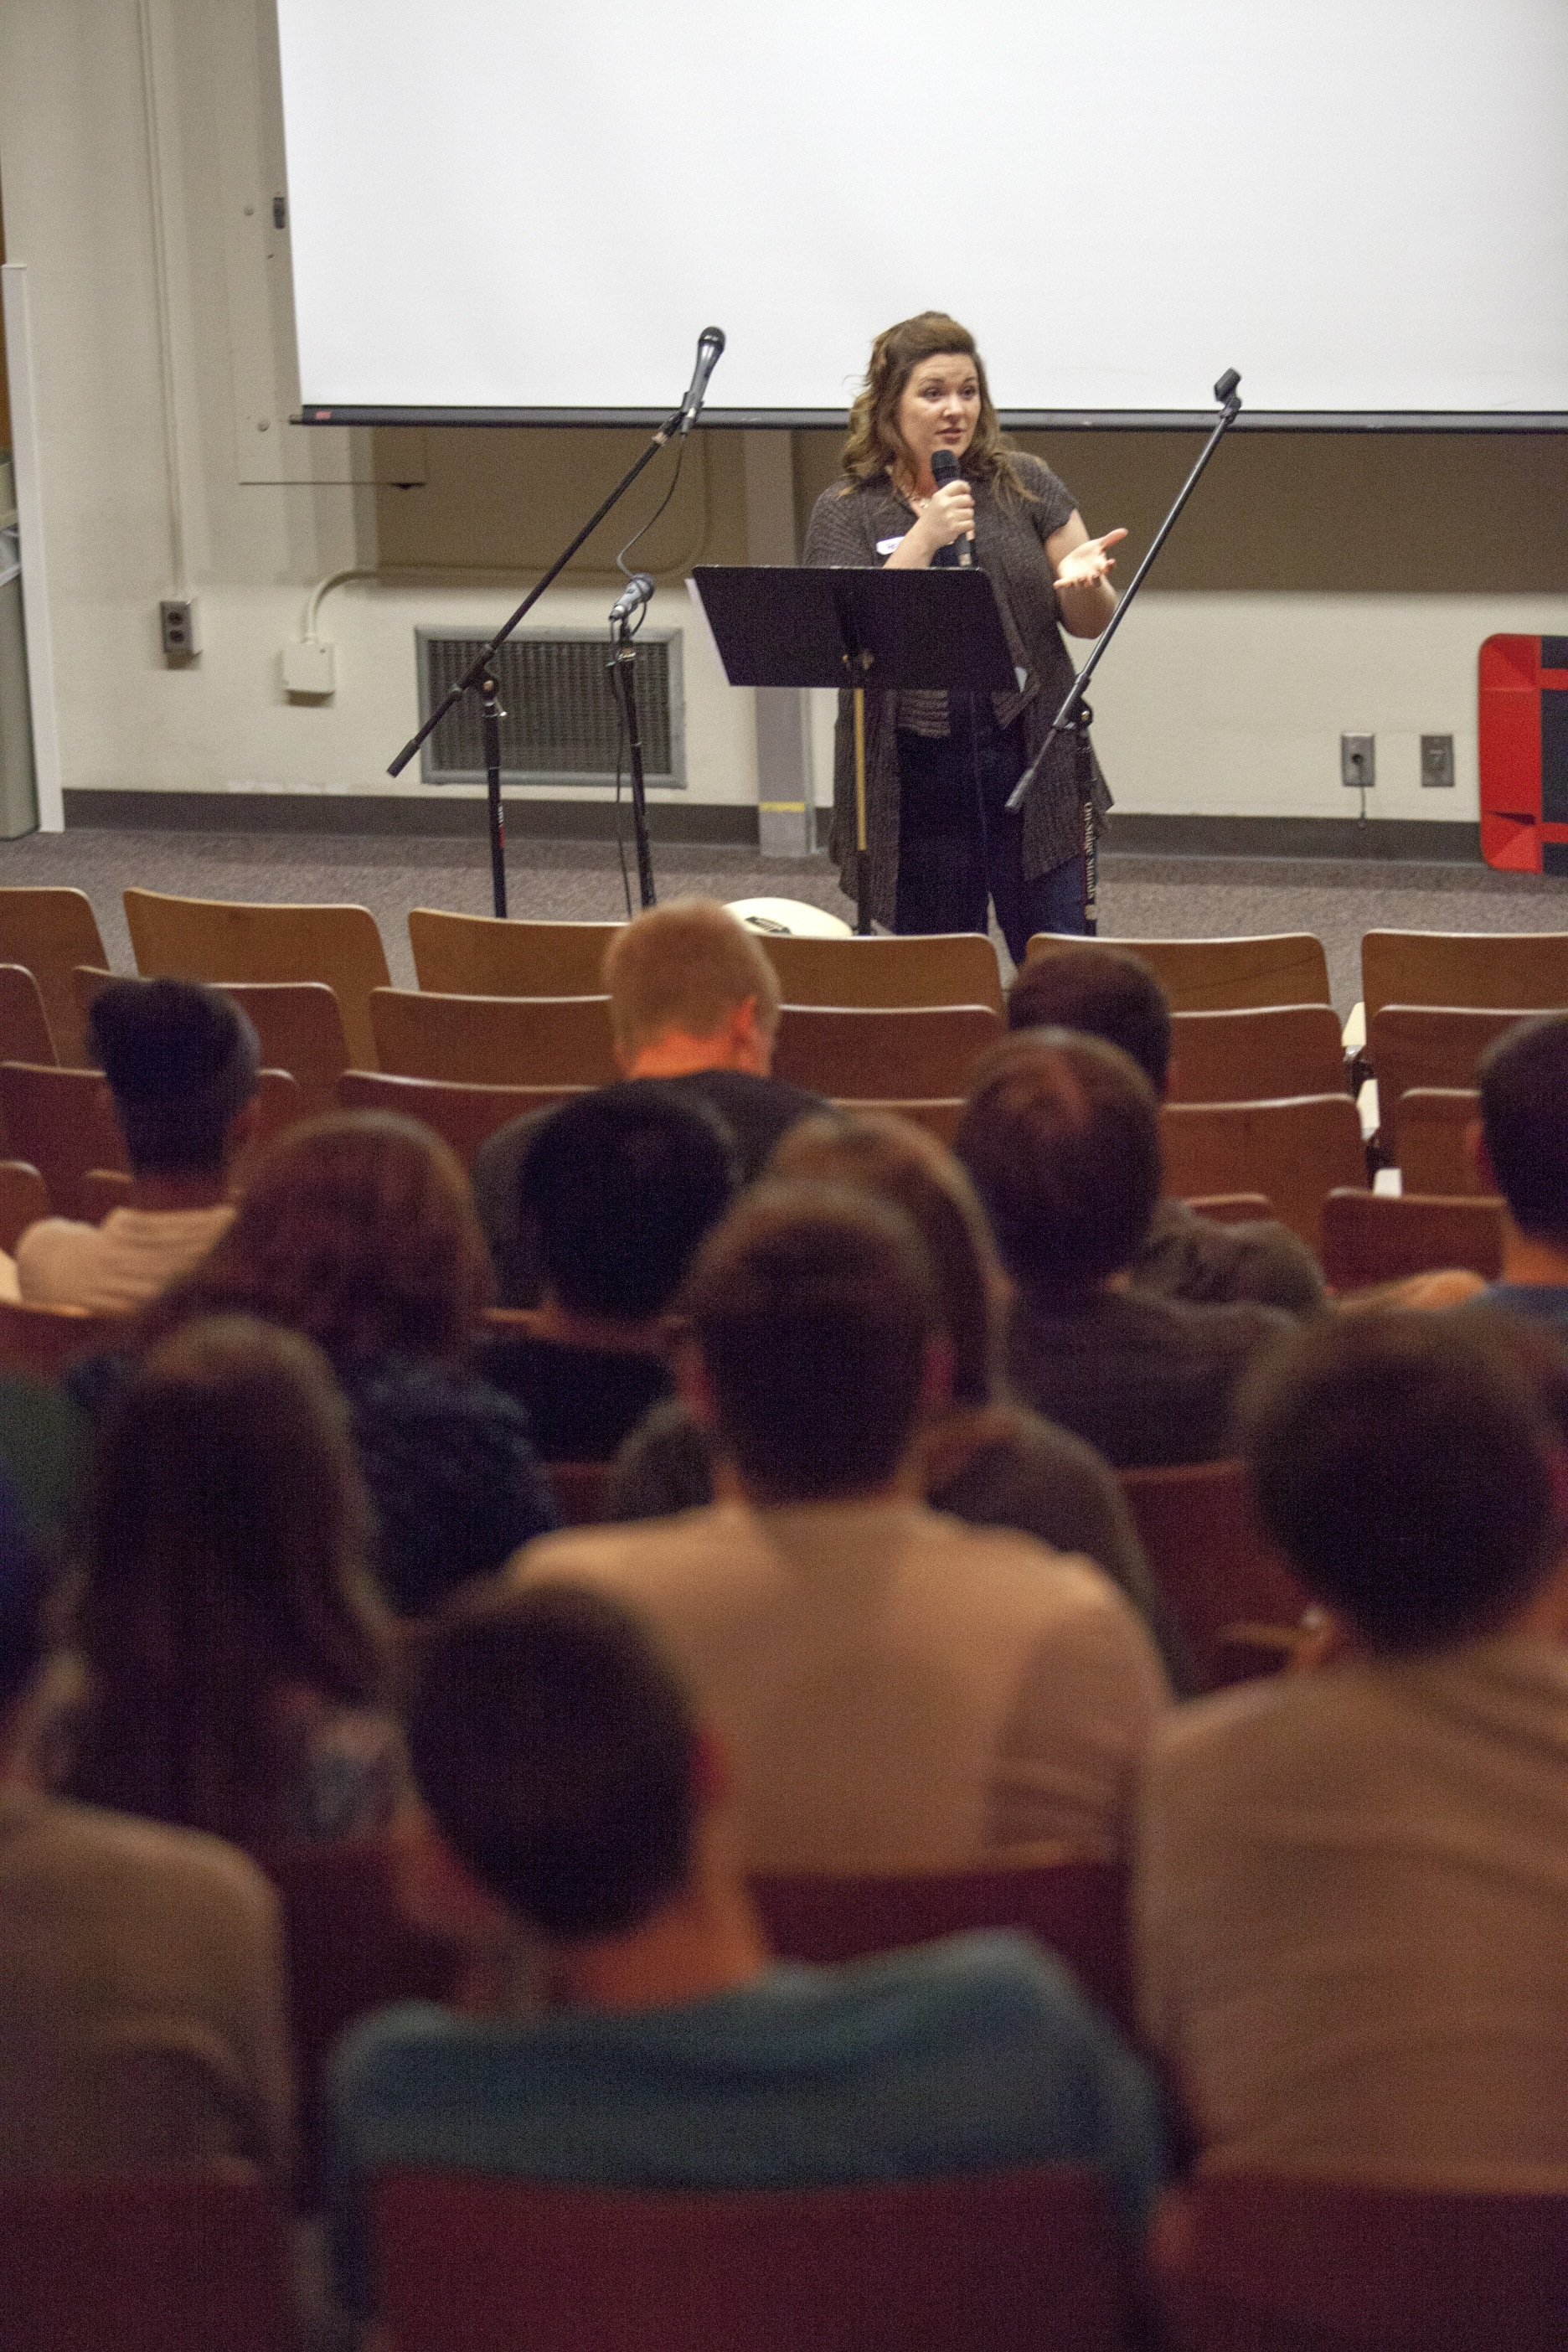 Holly Speaking at the U of A about influencing others with the gospel after college.